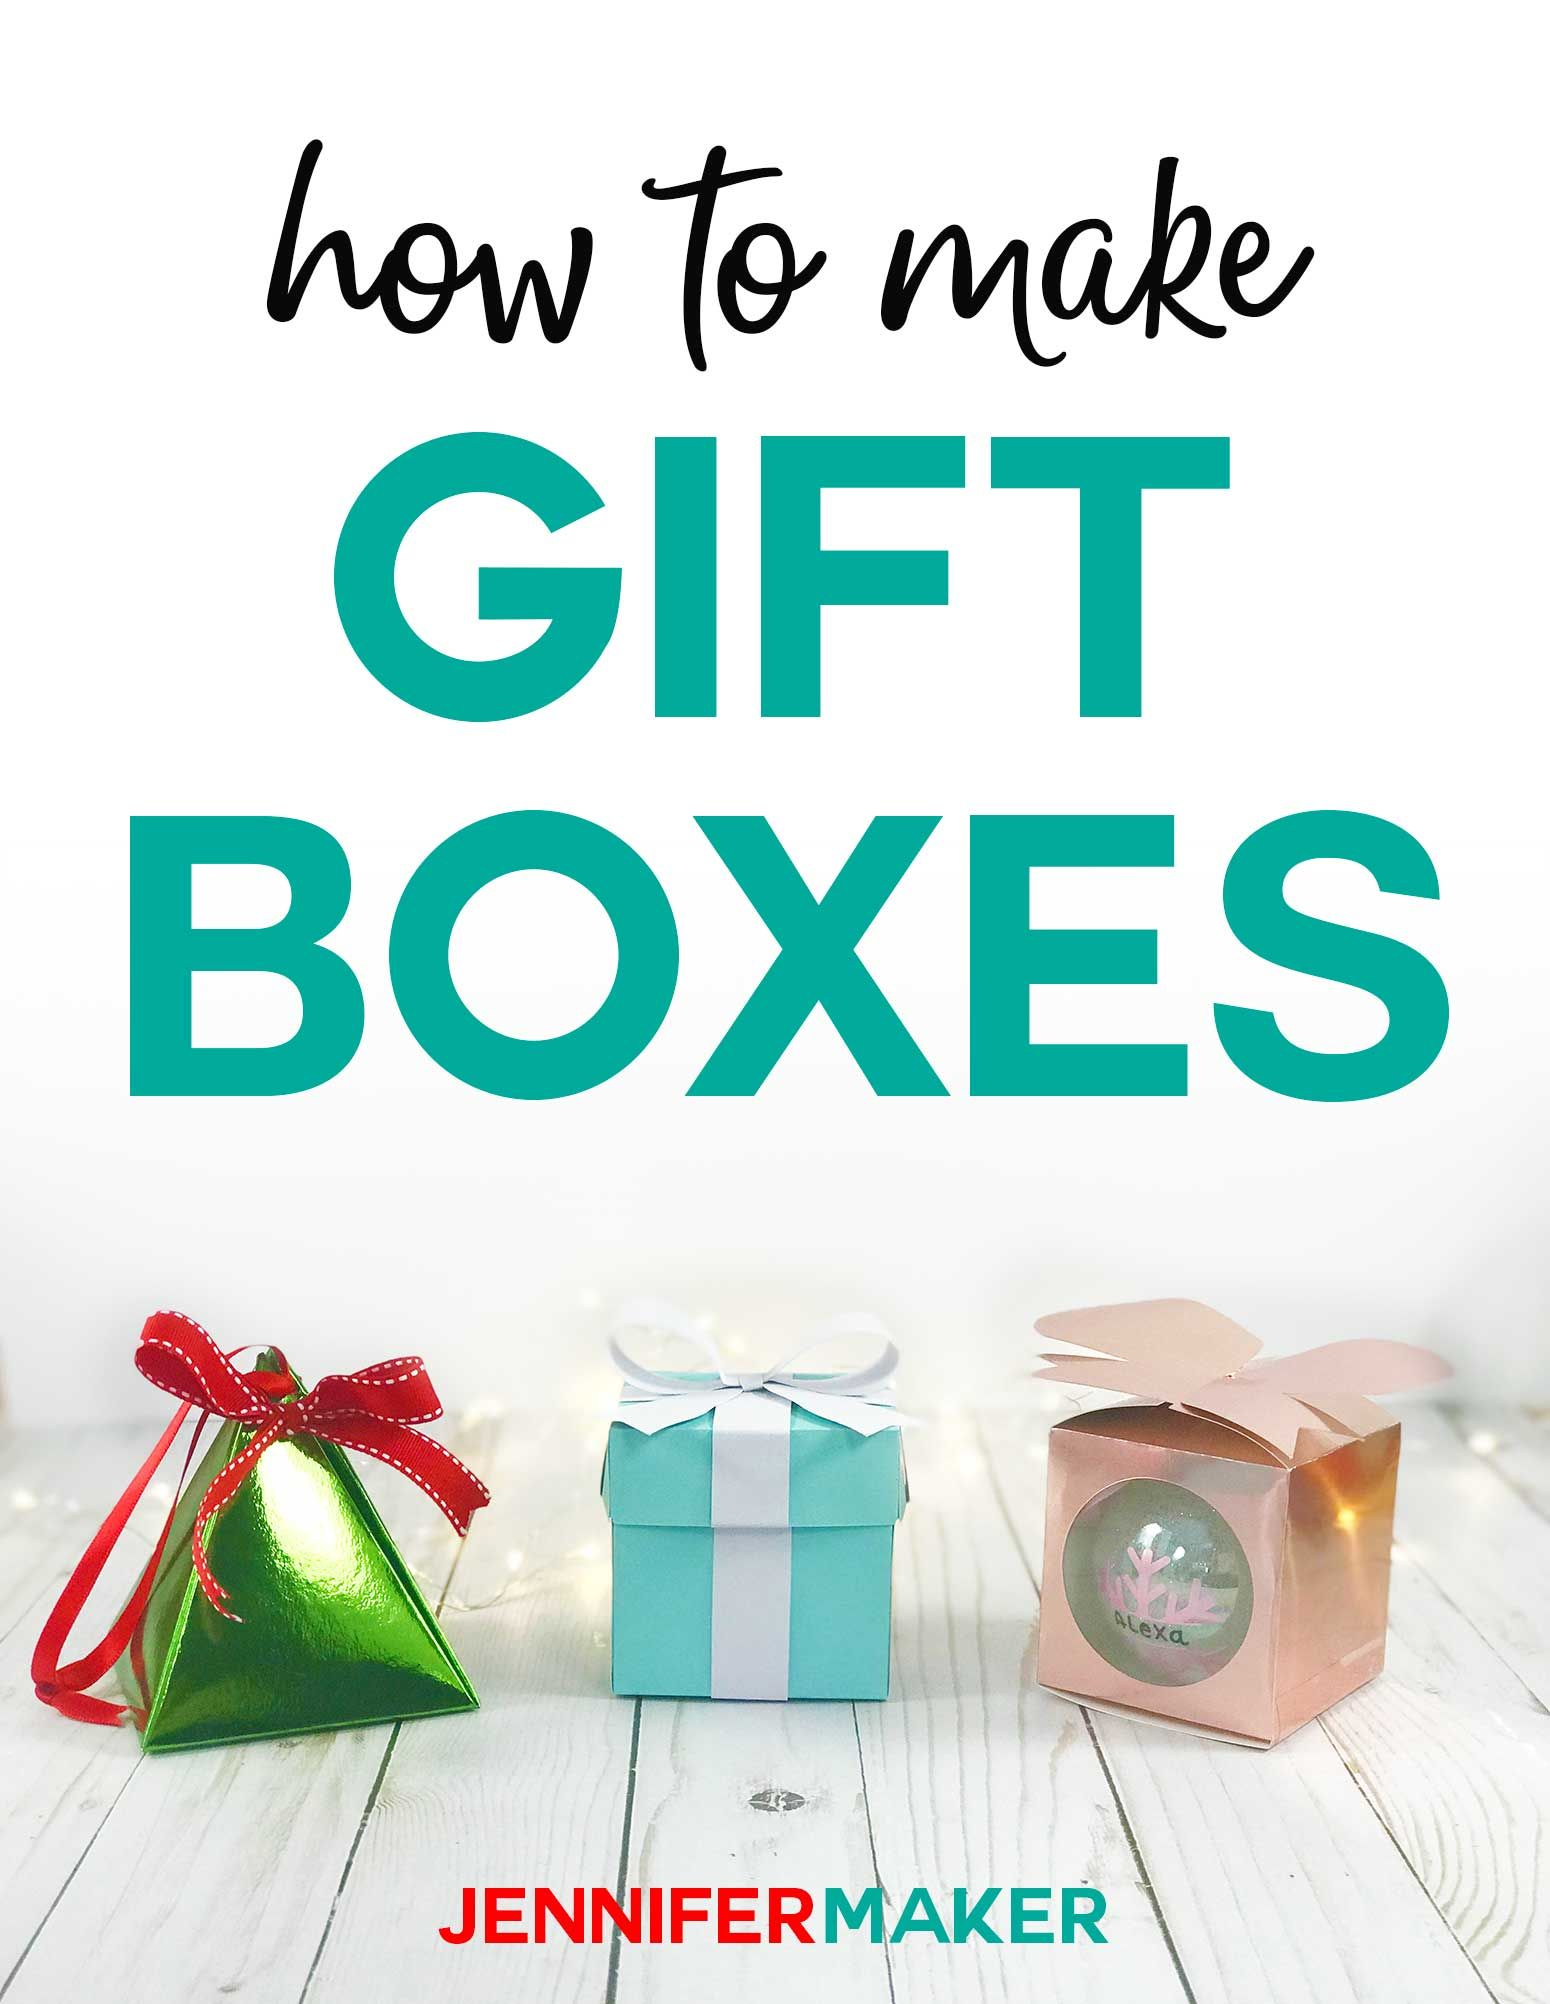 Gift Box Templates Perfect for Handmade, Small Gifts and